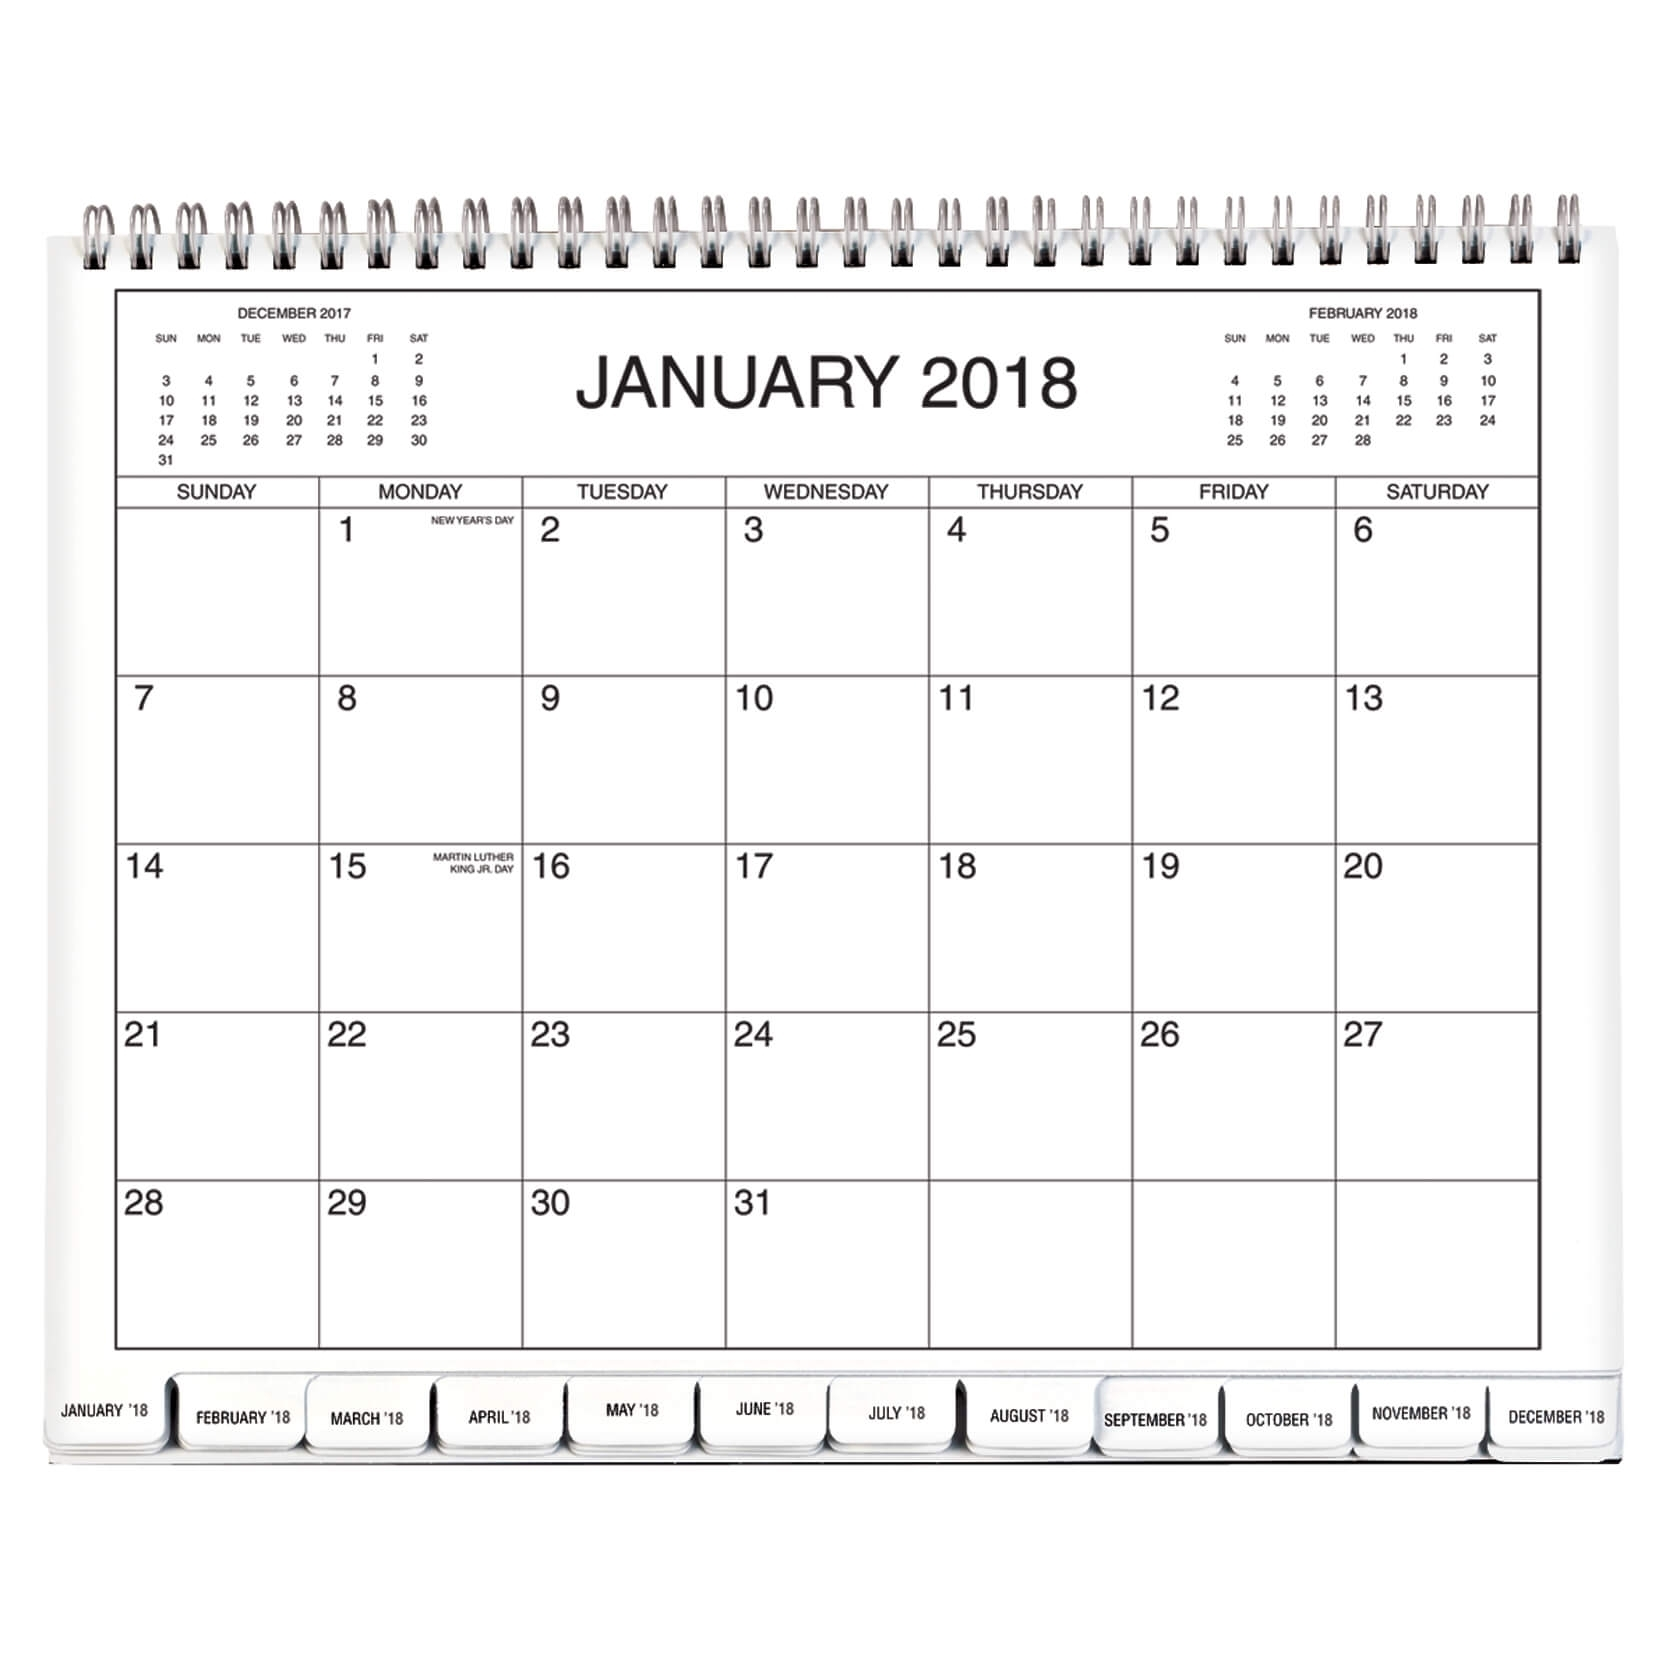 Personalized Planners - Magnetic Calendars - Walter Drake inside Calendar To Type On 2019 - 2020